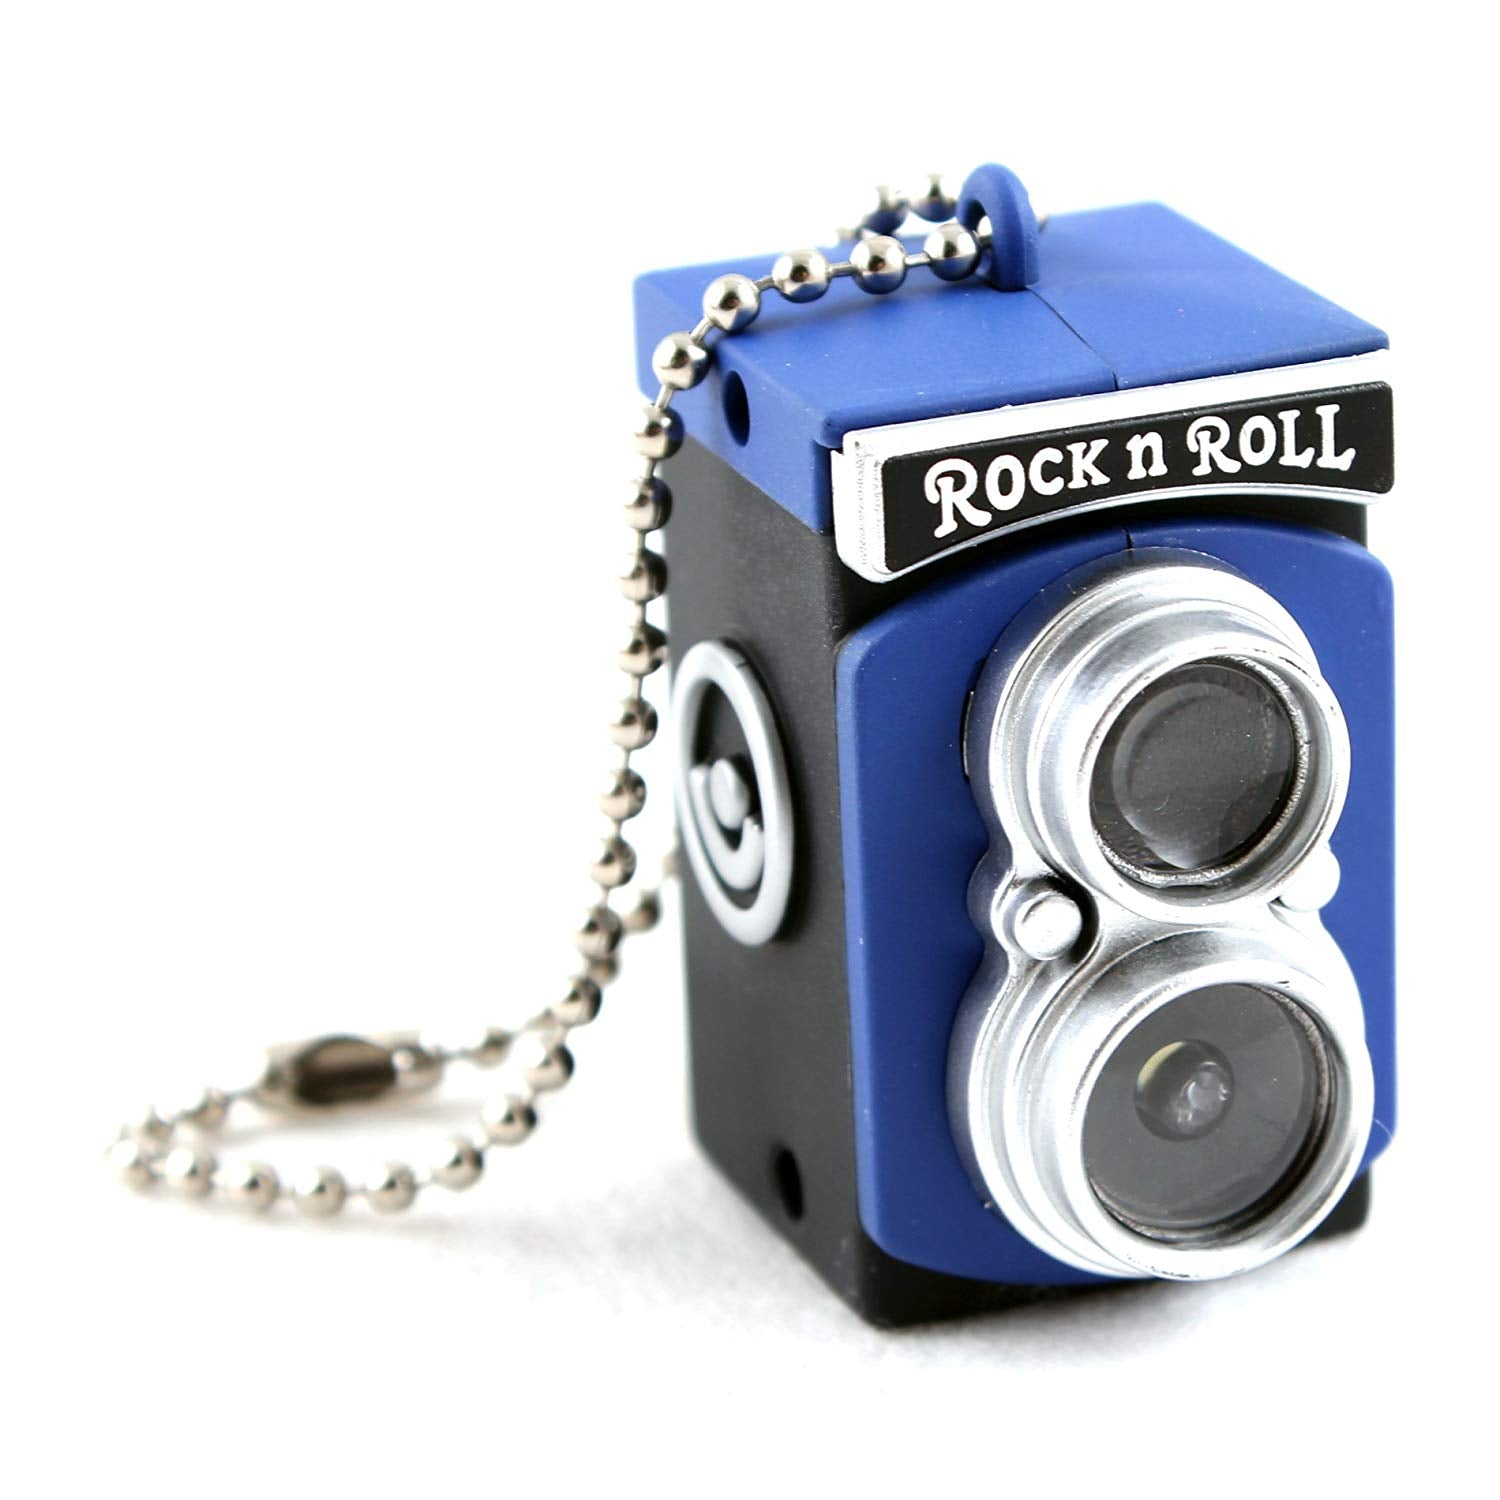 Mini Vintage Camera Toy Keychain Keyring with Flash Torch Charm Decoration BLUE